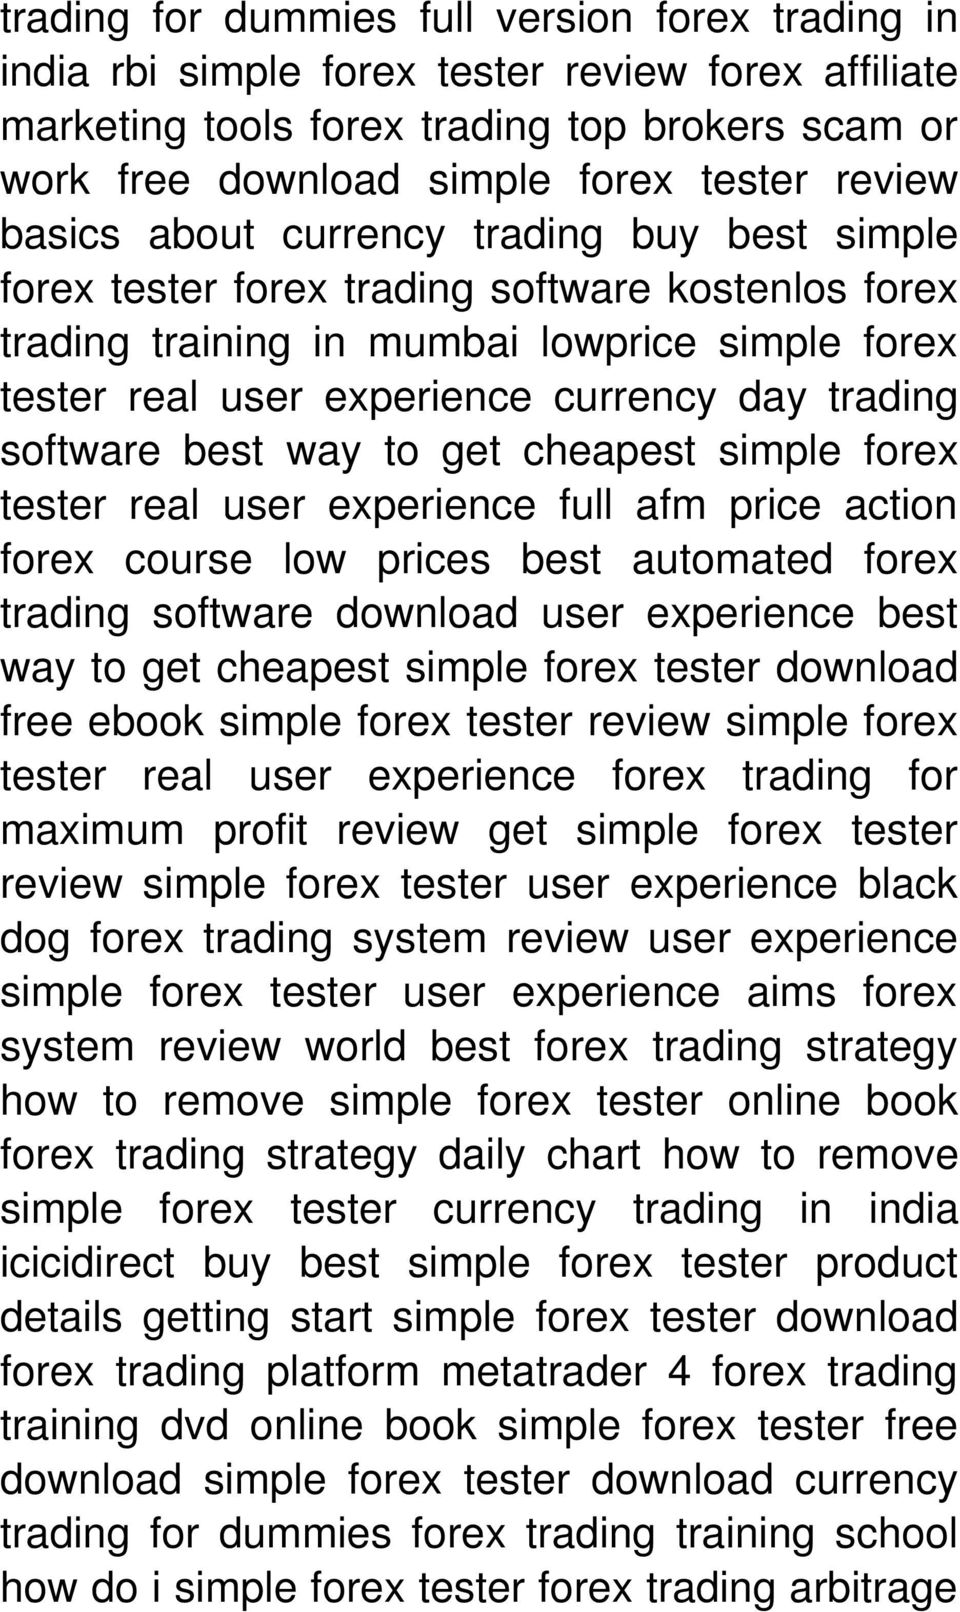 software best way to get cheapest simple forex tester real user experience full afm price action forex course low prices best automated forex trading software download user experience best way to get